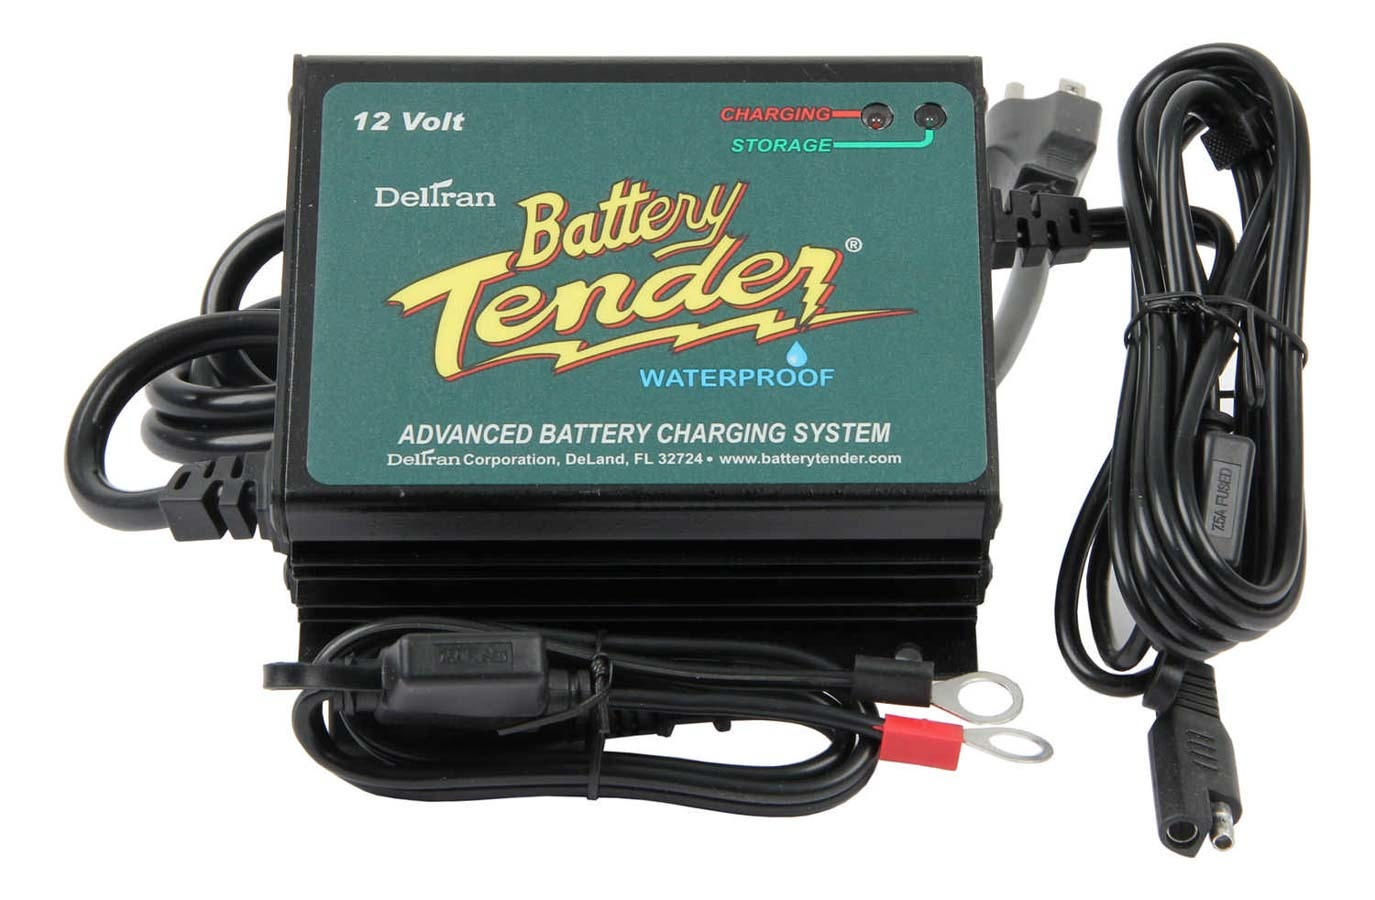 Battery Tender 022-0157-1 Battery Charger, Battery Tender Plus, Waterproof, 12V, 5 amp, 4 Step Charging Program, Quick Connect Harness, Vibration Resistant, Each